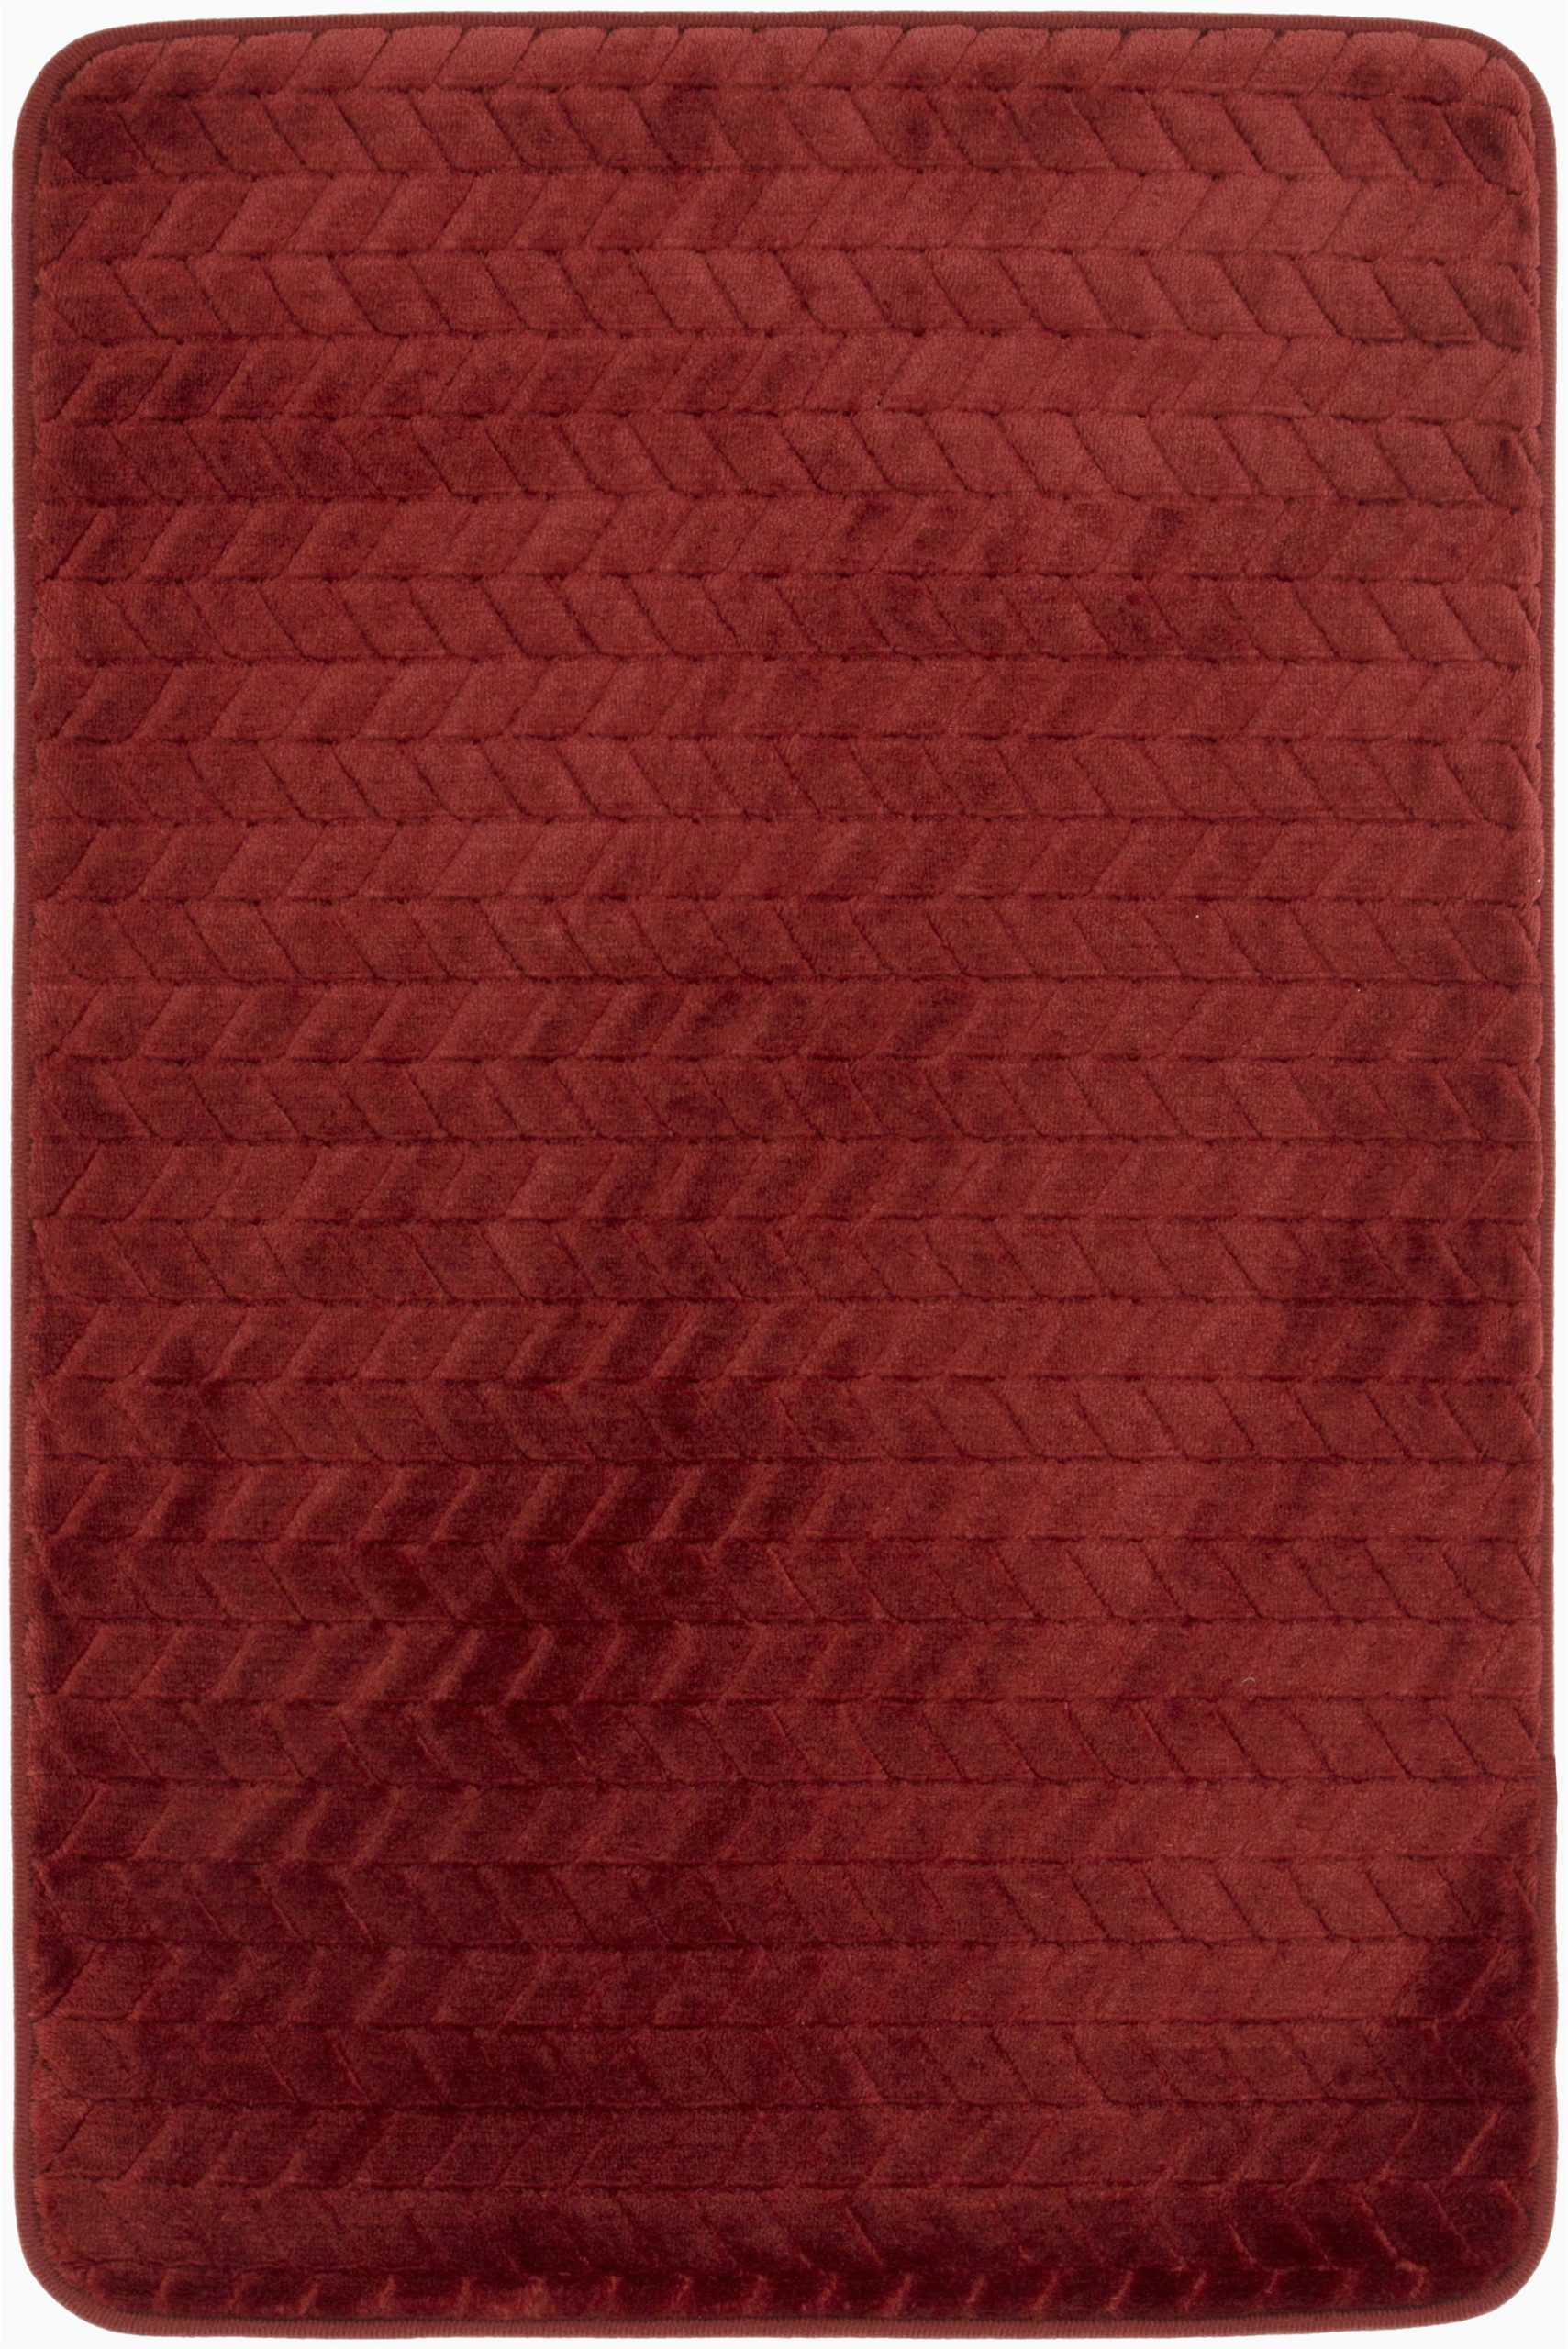 Mohawk Home Memory Foam Bath Rug Mohawk Memory Foam Bath Rug In Red 18 X 27 Brickseek